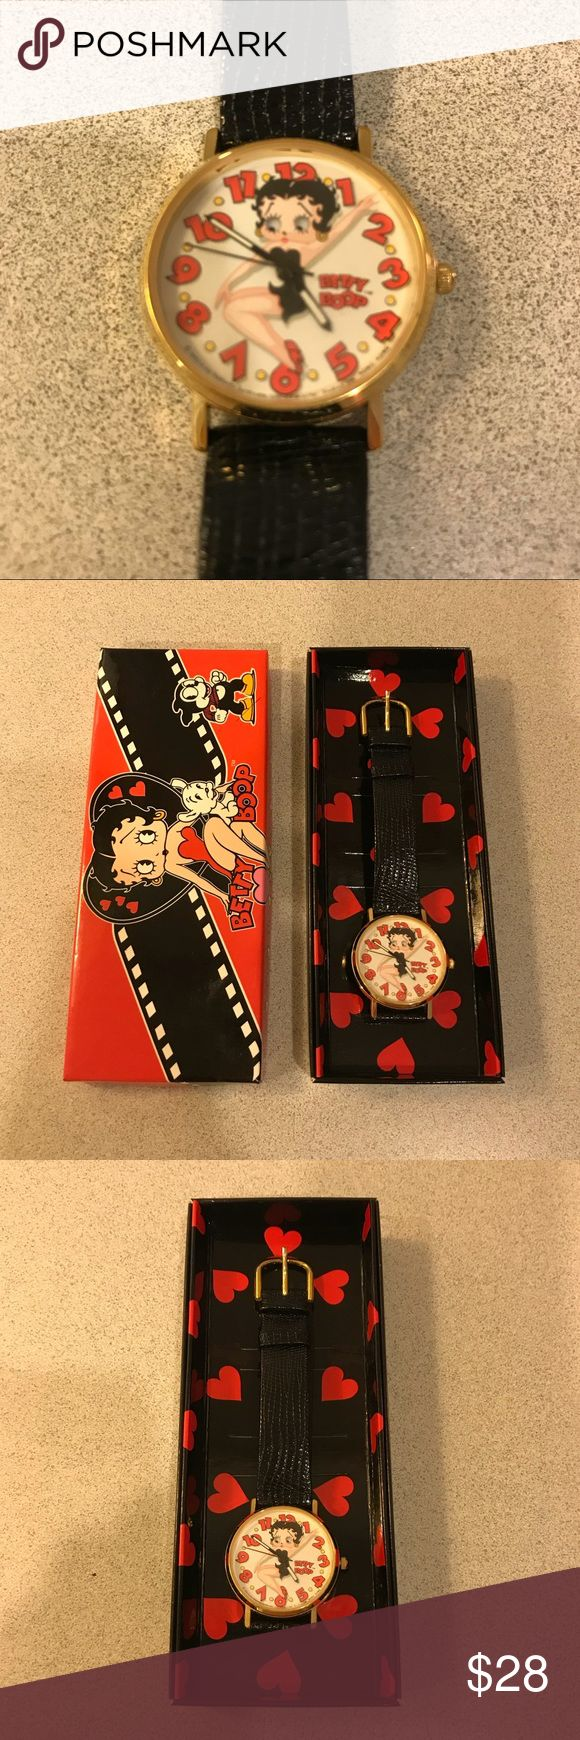 Vintage Betty Boop Watch - 1994 This is a great Betty Boop collectible watch from 1994. The watch and band are both in great condition; just needs a new battery. Enjoy❤️ Accessories Watches